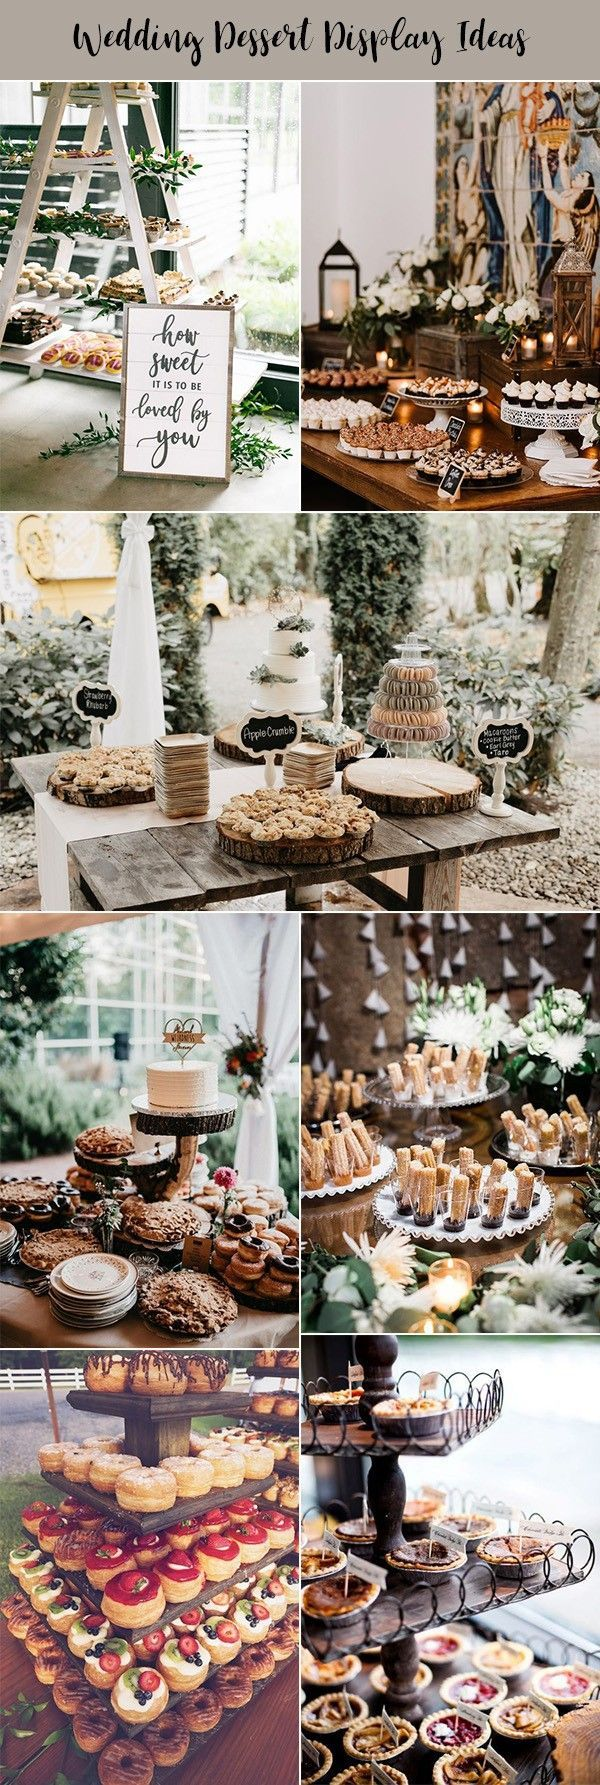 20 Super Sweet Wedding Dessert Display and Table Ideas